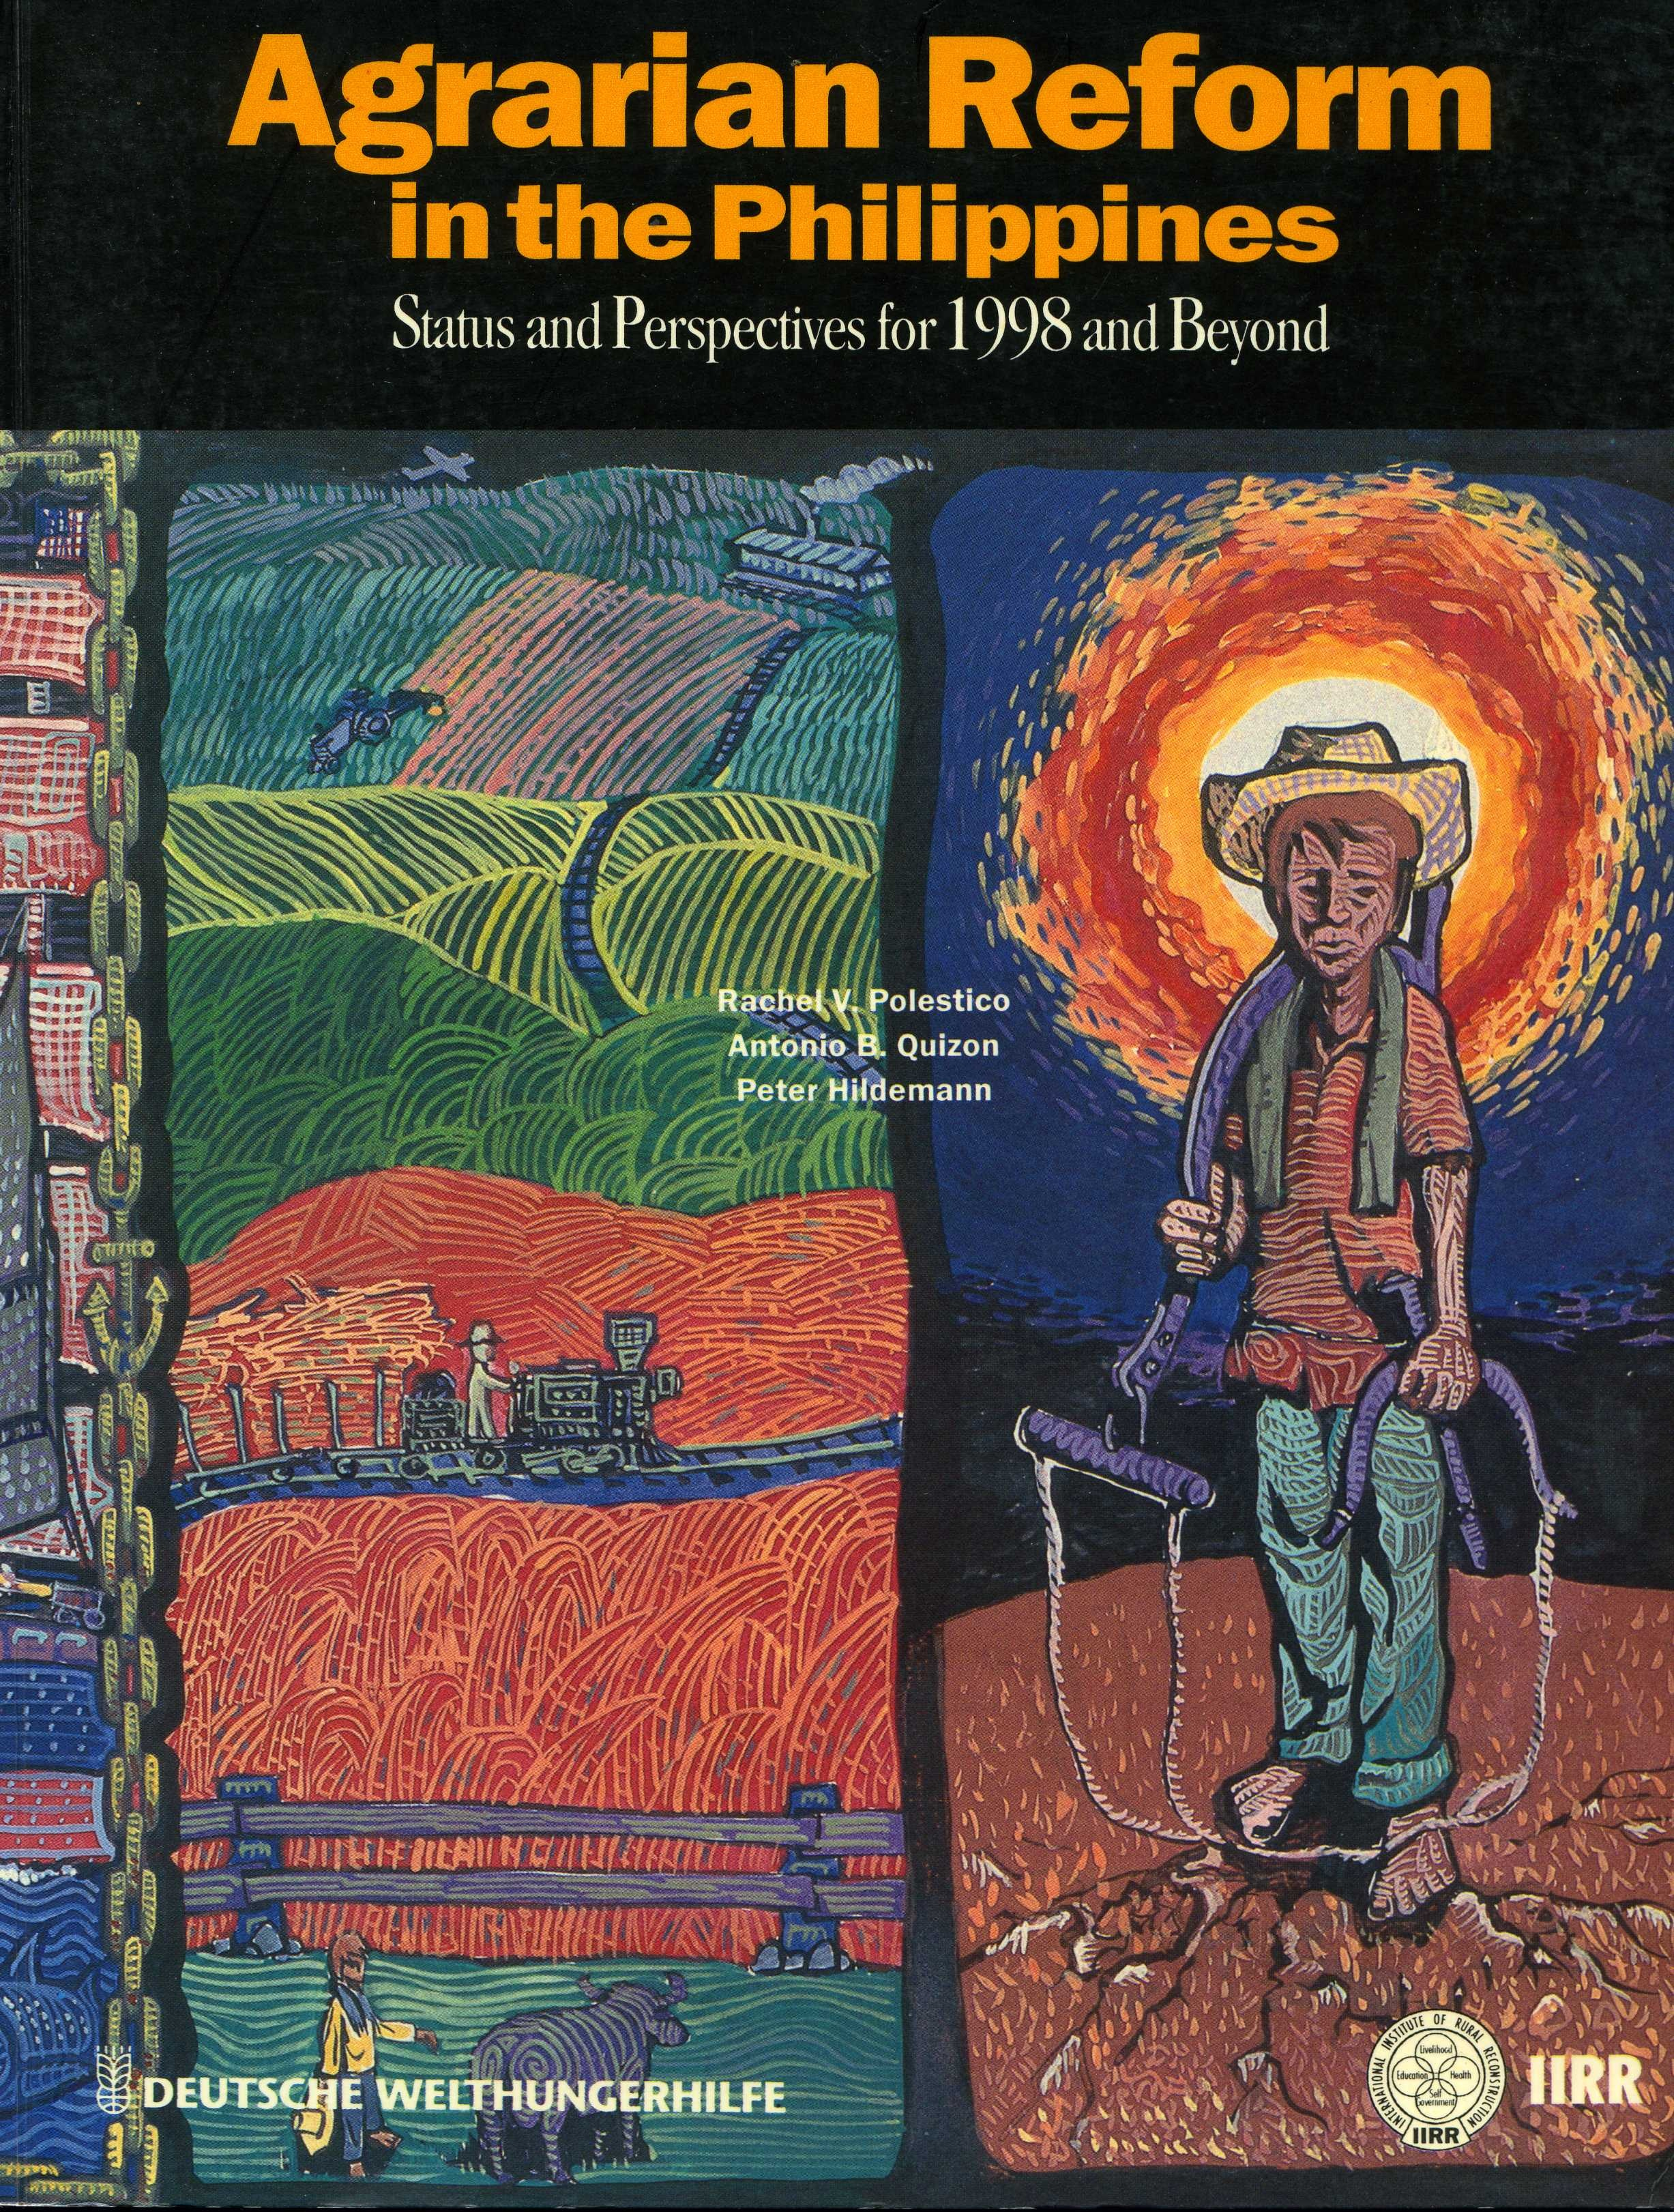 Editor  Polestico, R.V., Quizon, A.B. and Hildemann, P. (1998)  Agrarian reform in the Philippines: Status and perspectives for 1998 and beyond.  German Agro Action and IIRR: Philippines.  ISBN: 0-942717-93-9